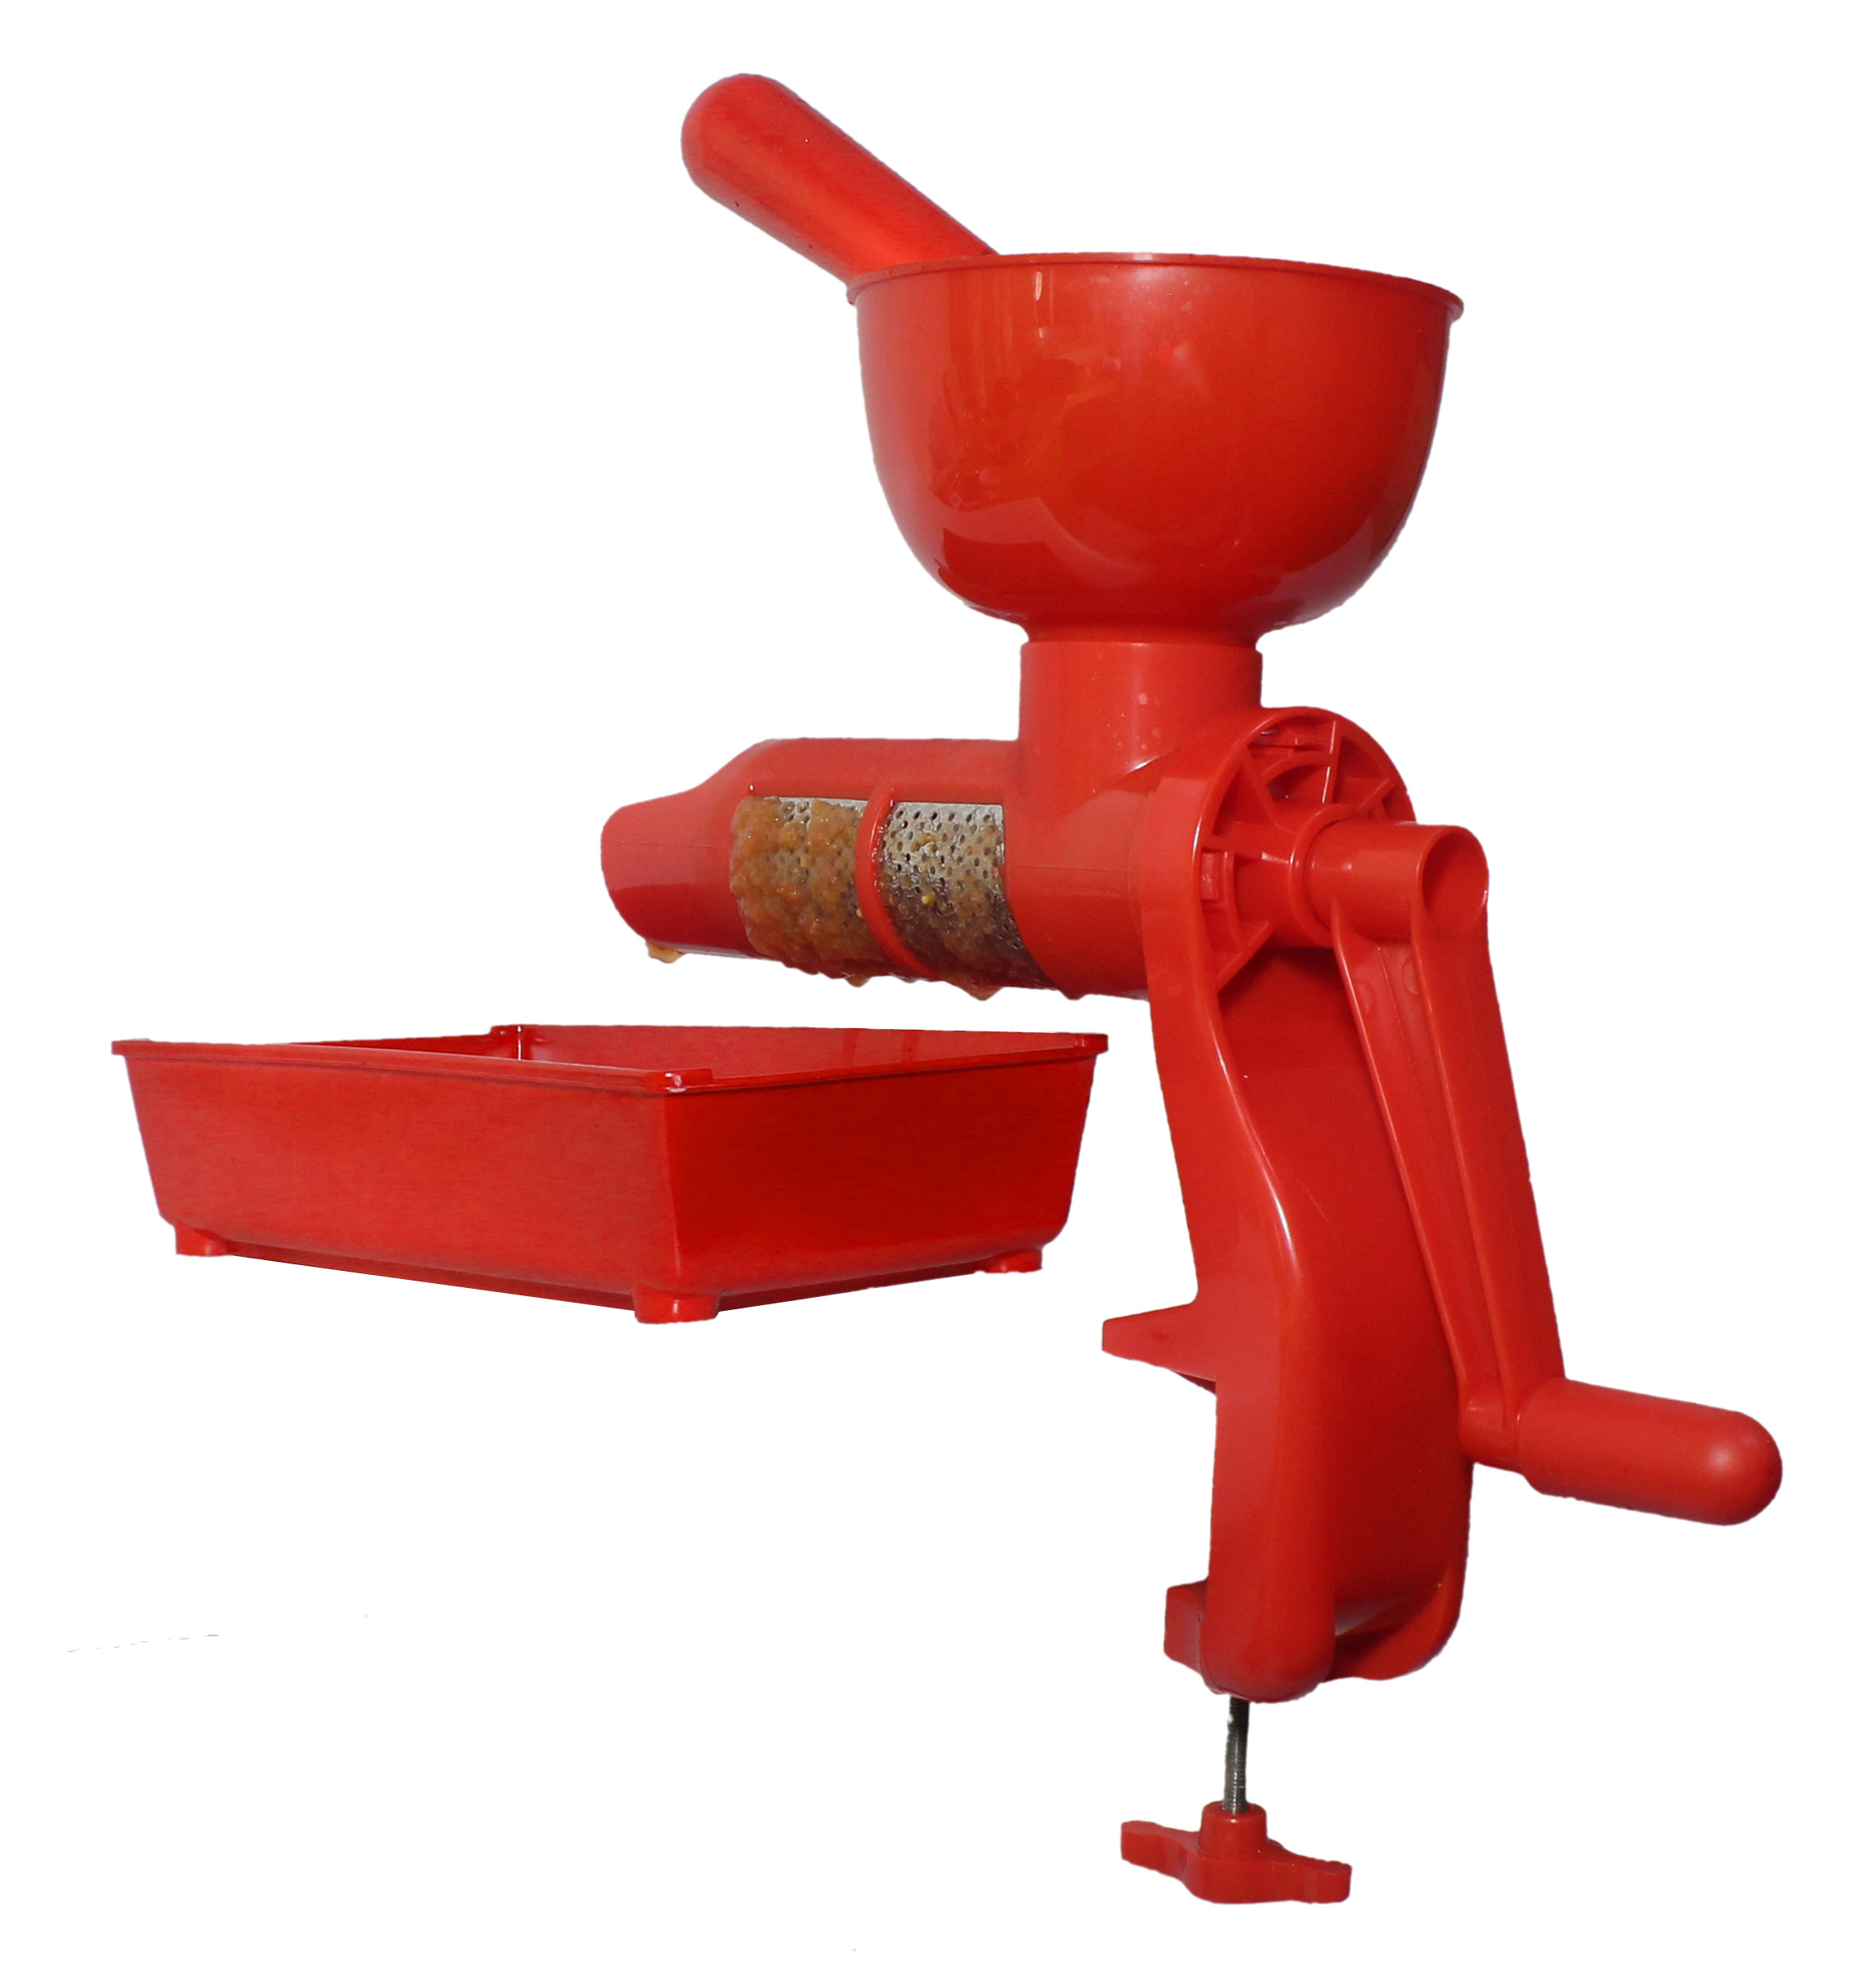 TANIA tomato juicer and grater